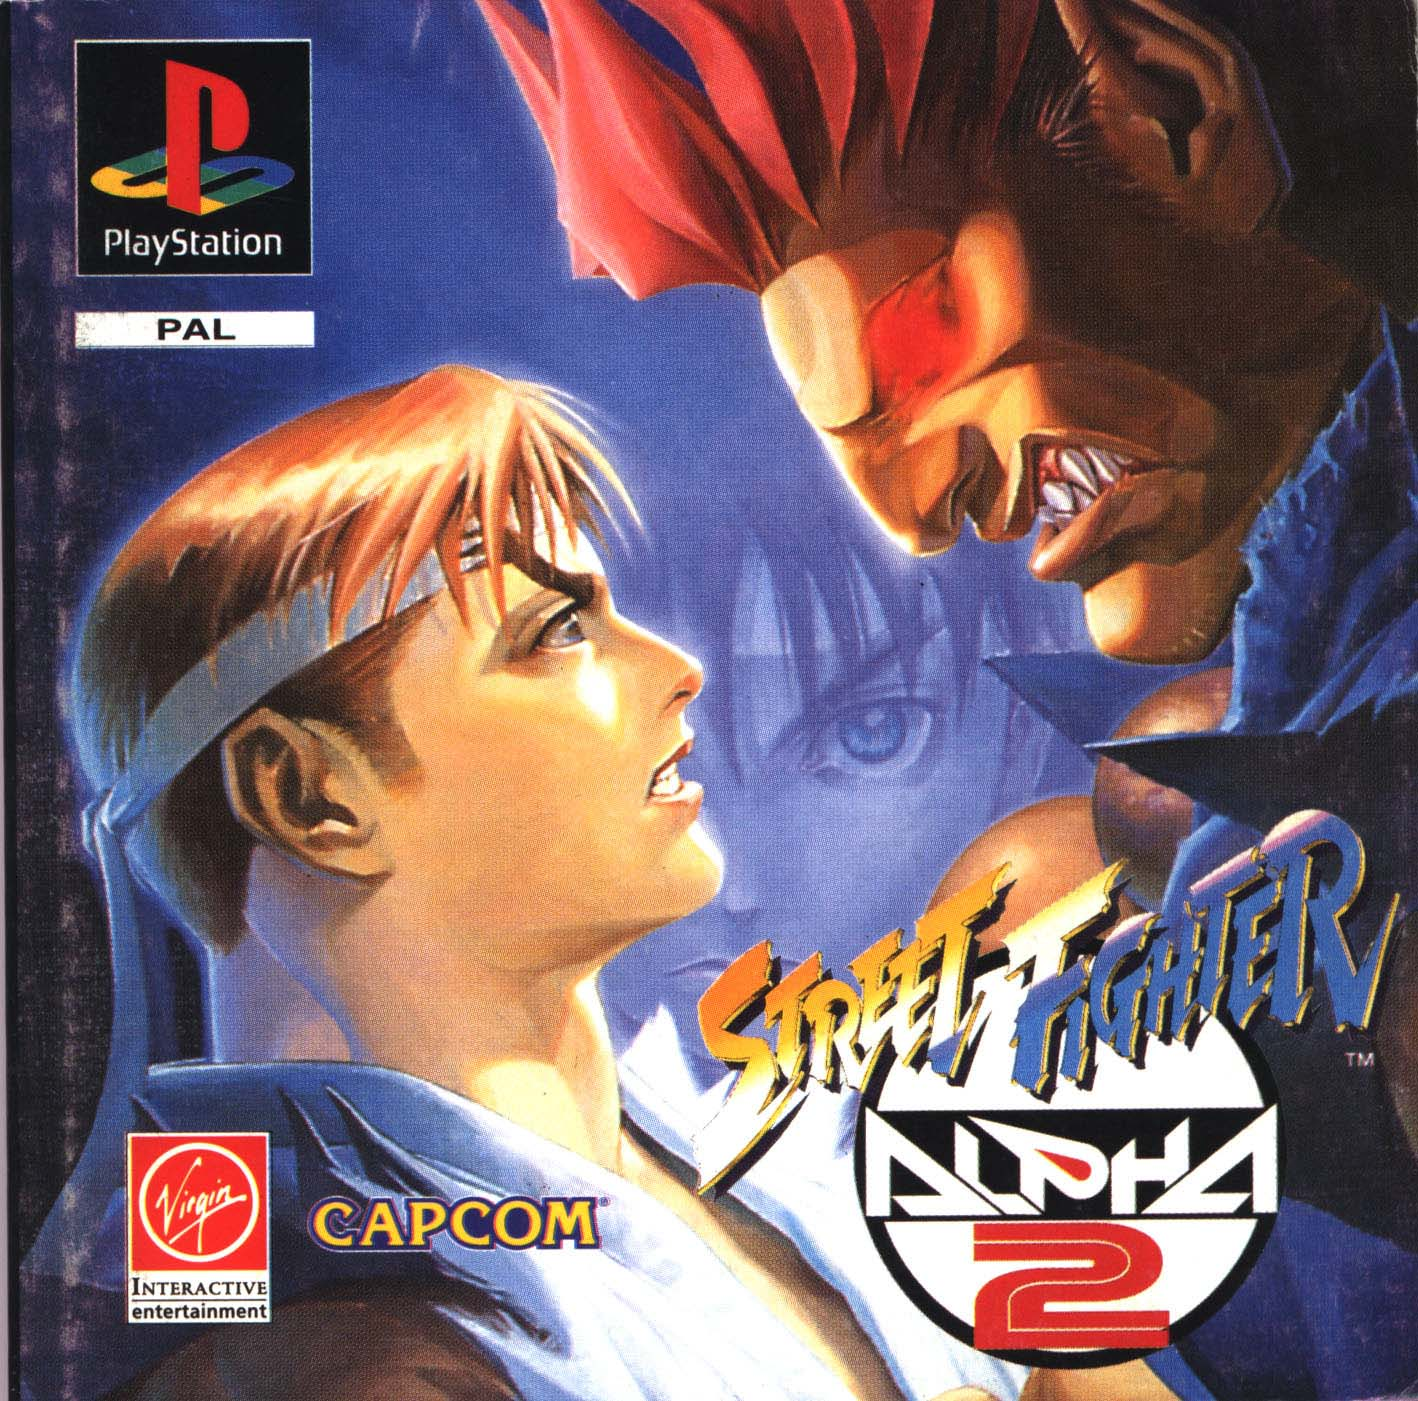 Street Fighter Zero 2 Video Game Ps1 1996 Reviews Ratings